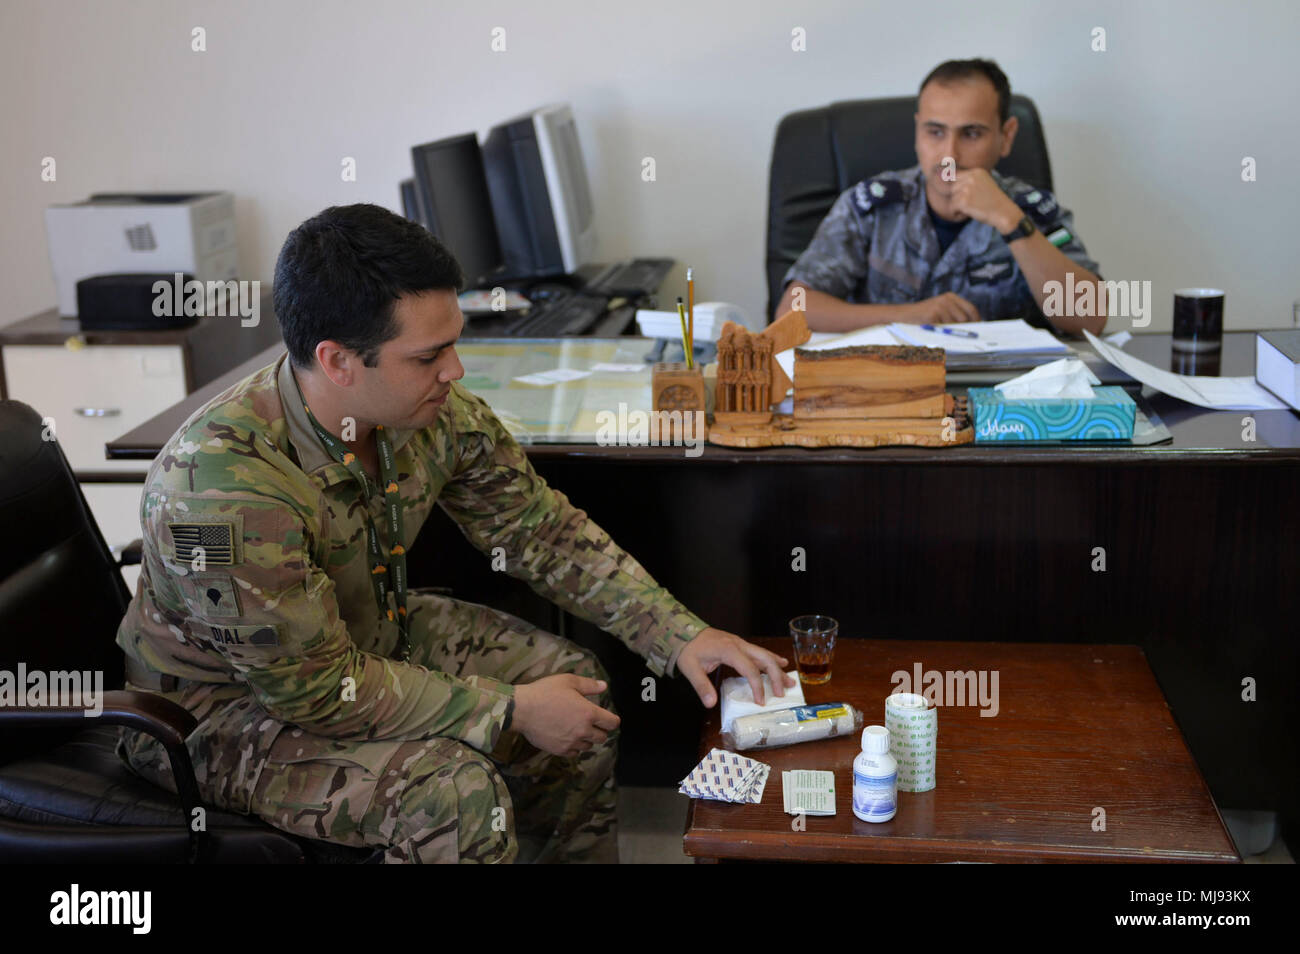 AQABA, Jordan (April 23, 2018) -- U.S. Army Spc. Caleb Dial with U.S. Army Civil Affairs, shows Lt. Cmdr. Mohannad AL-Namat, commanding officer, Royal Jordanian Navy Combat Boats Group,  medical supply kits prior to the outreach event with the local fishermen during exercise Eager Lion, April 23, 2018.  Eager Lion is a capstone training engagement that provides U.S. forces and the Jordan Armed Forces an opportunity to rehearse operating in a coalition environment and to pursue new ways to collectively address threats to regional security and improve overall maritime security.  (U.S. Navy photo Stock Photo